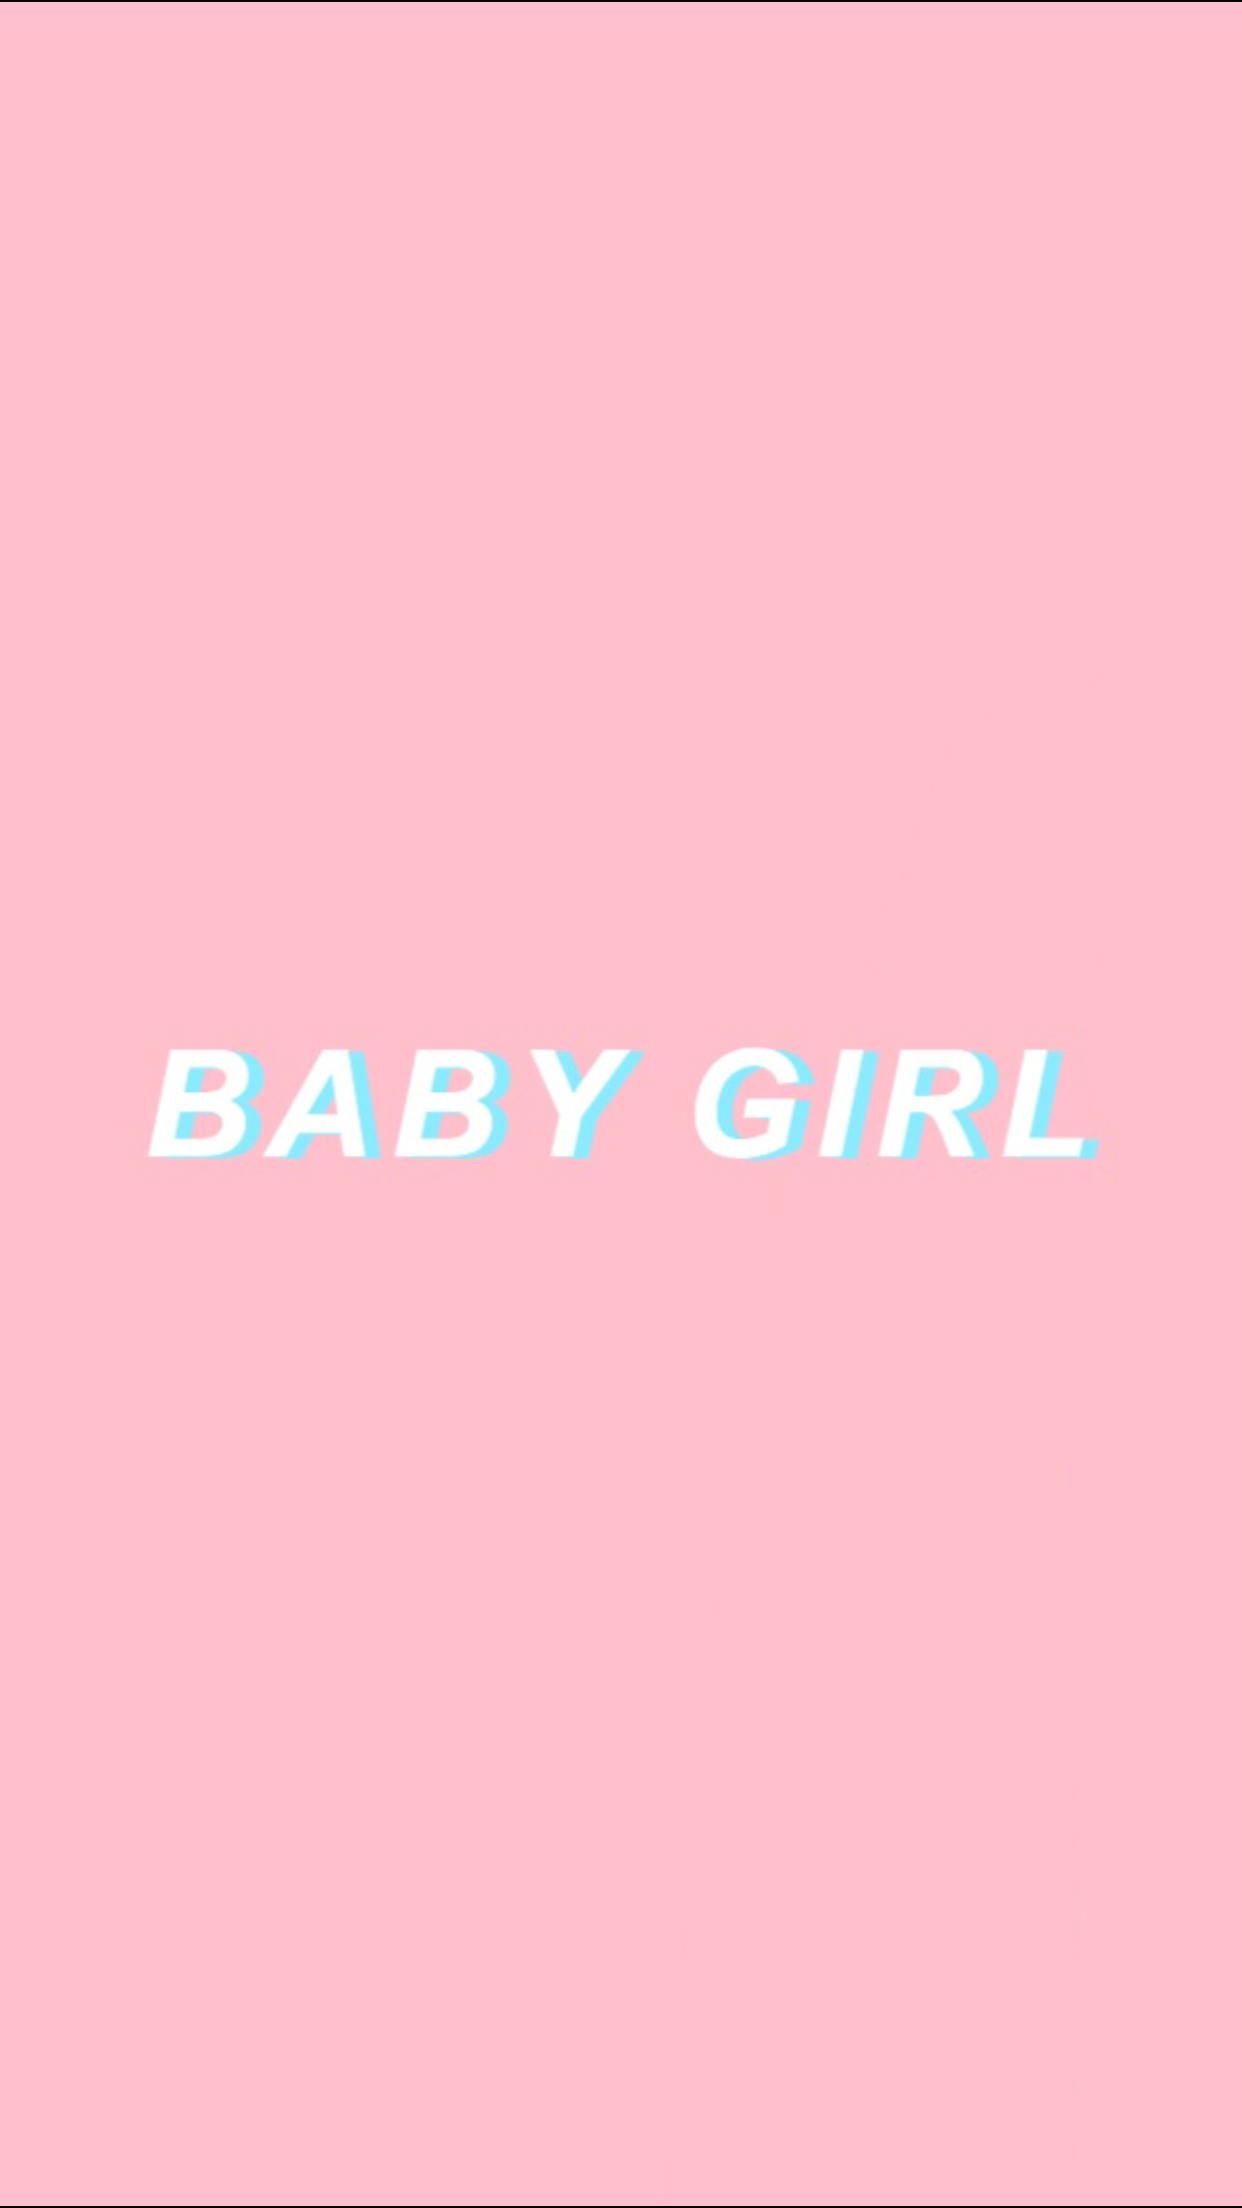 Aesthetic Iphone Cute Wallpapers For Girls